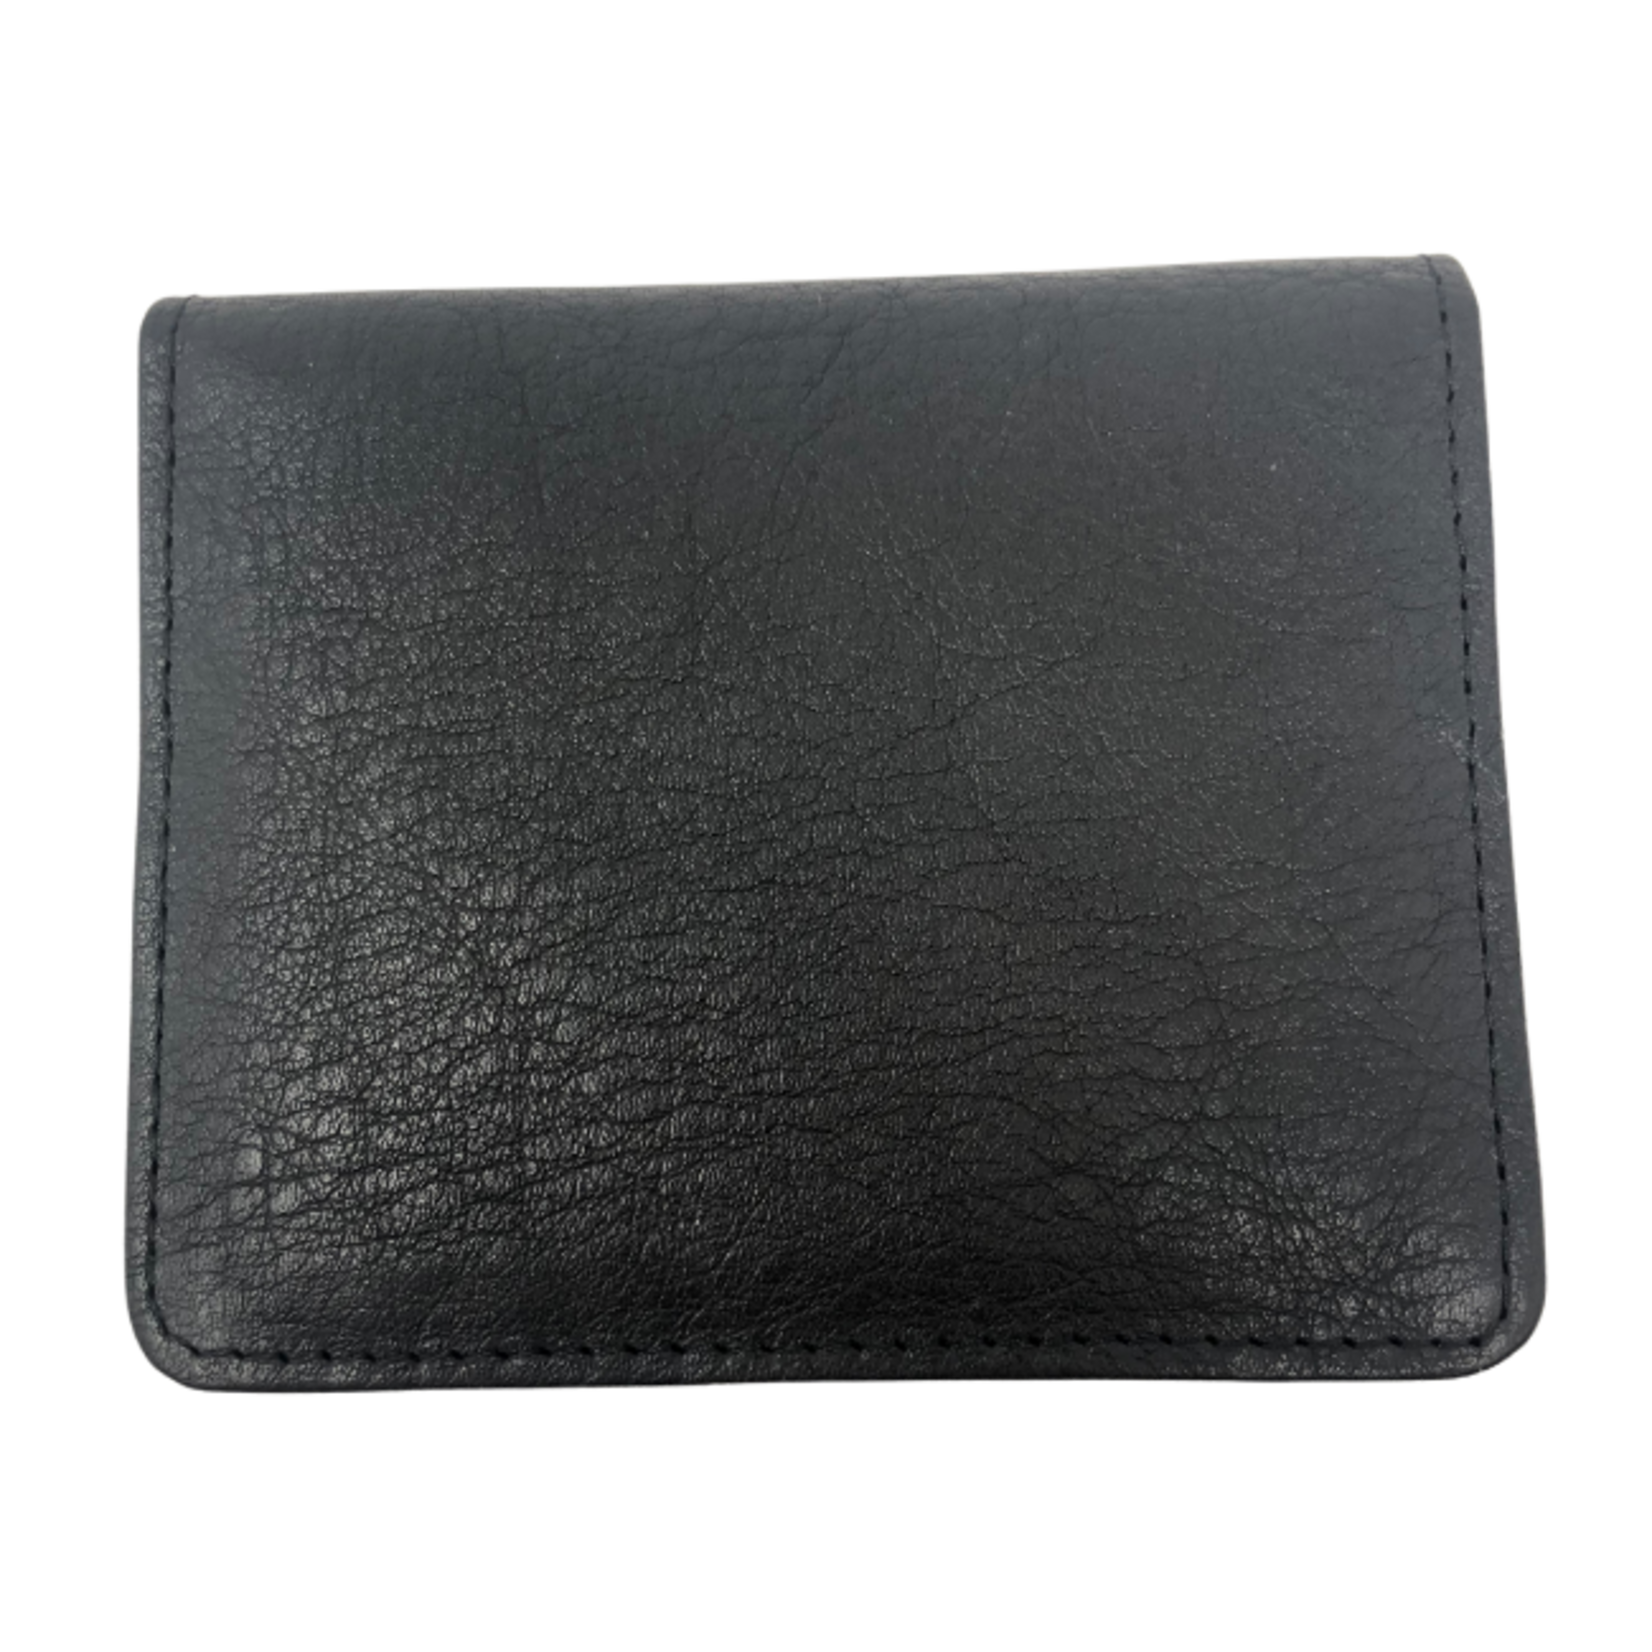 DEREK ALEXANDER SMALL LEATHER CARD CASE